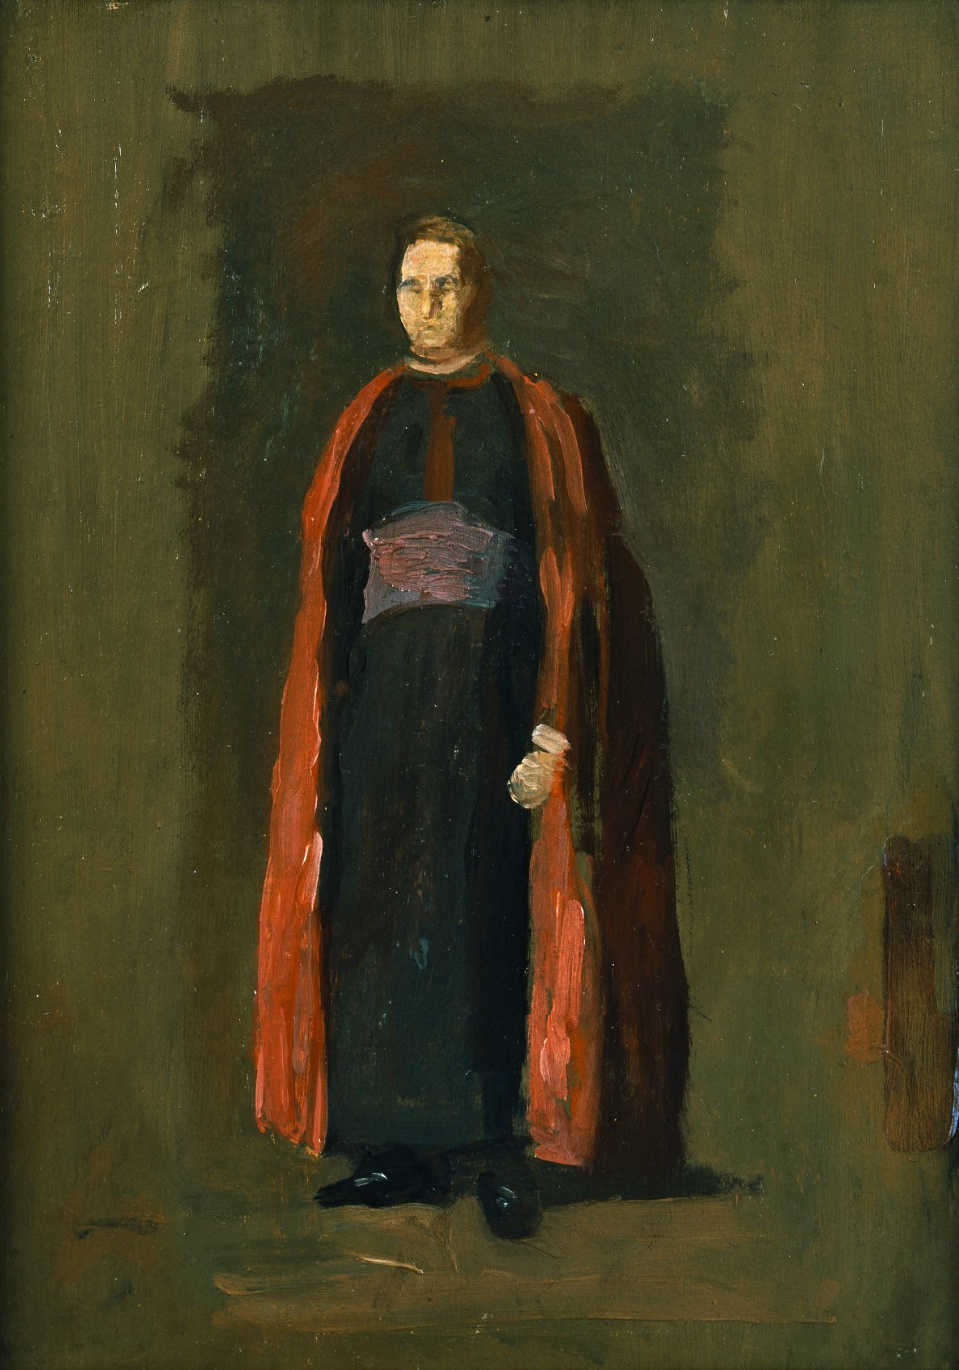 Thomas Eakins. Monsignor James Laughlin. Sketch